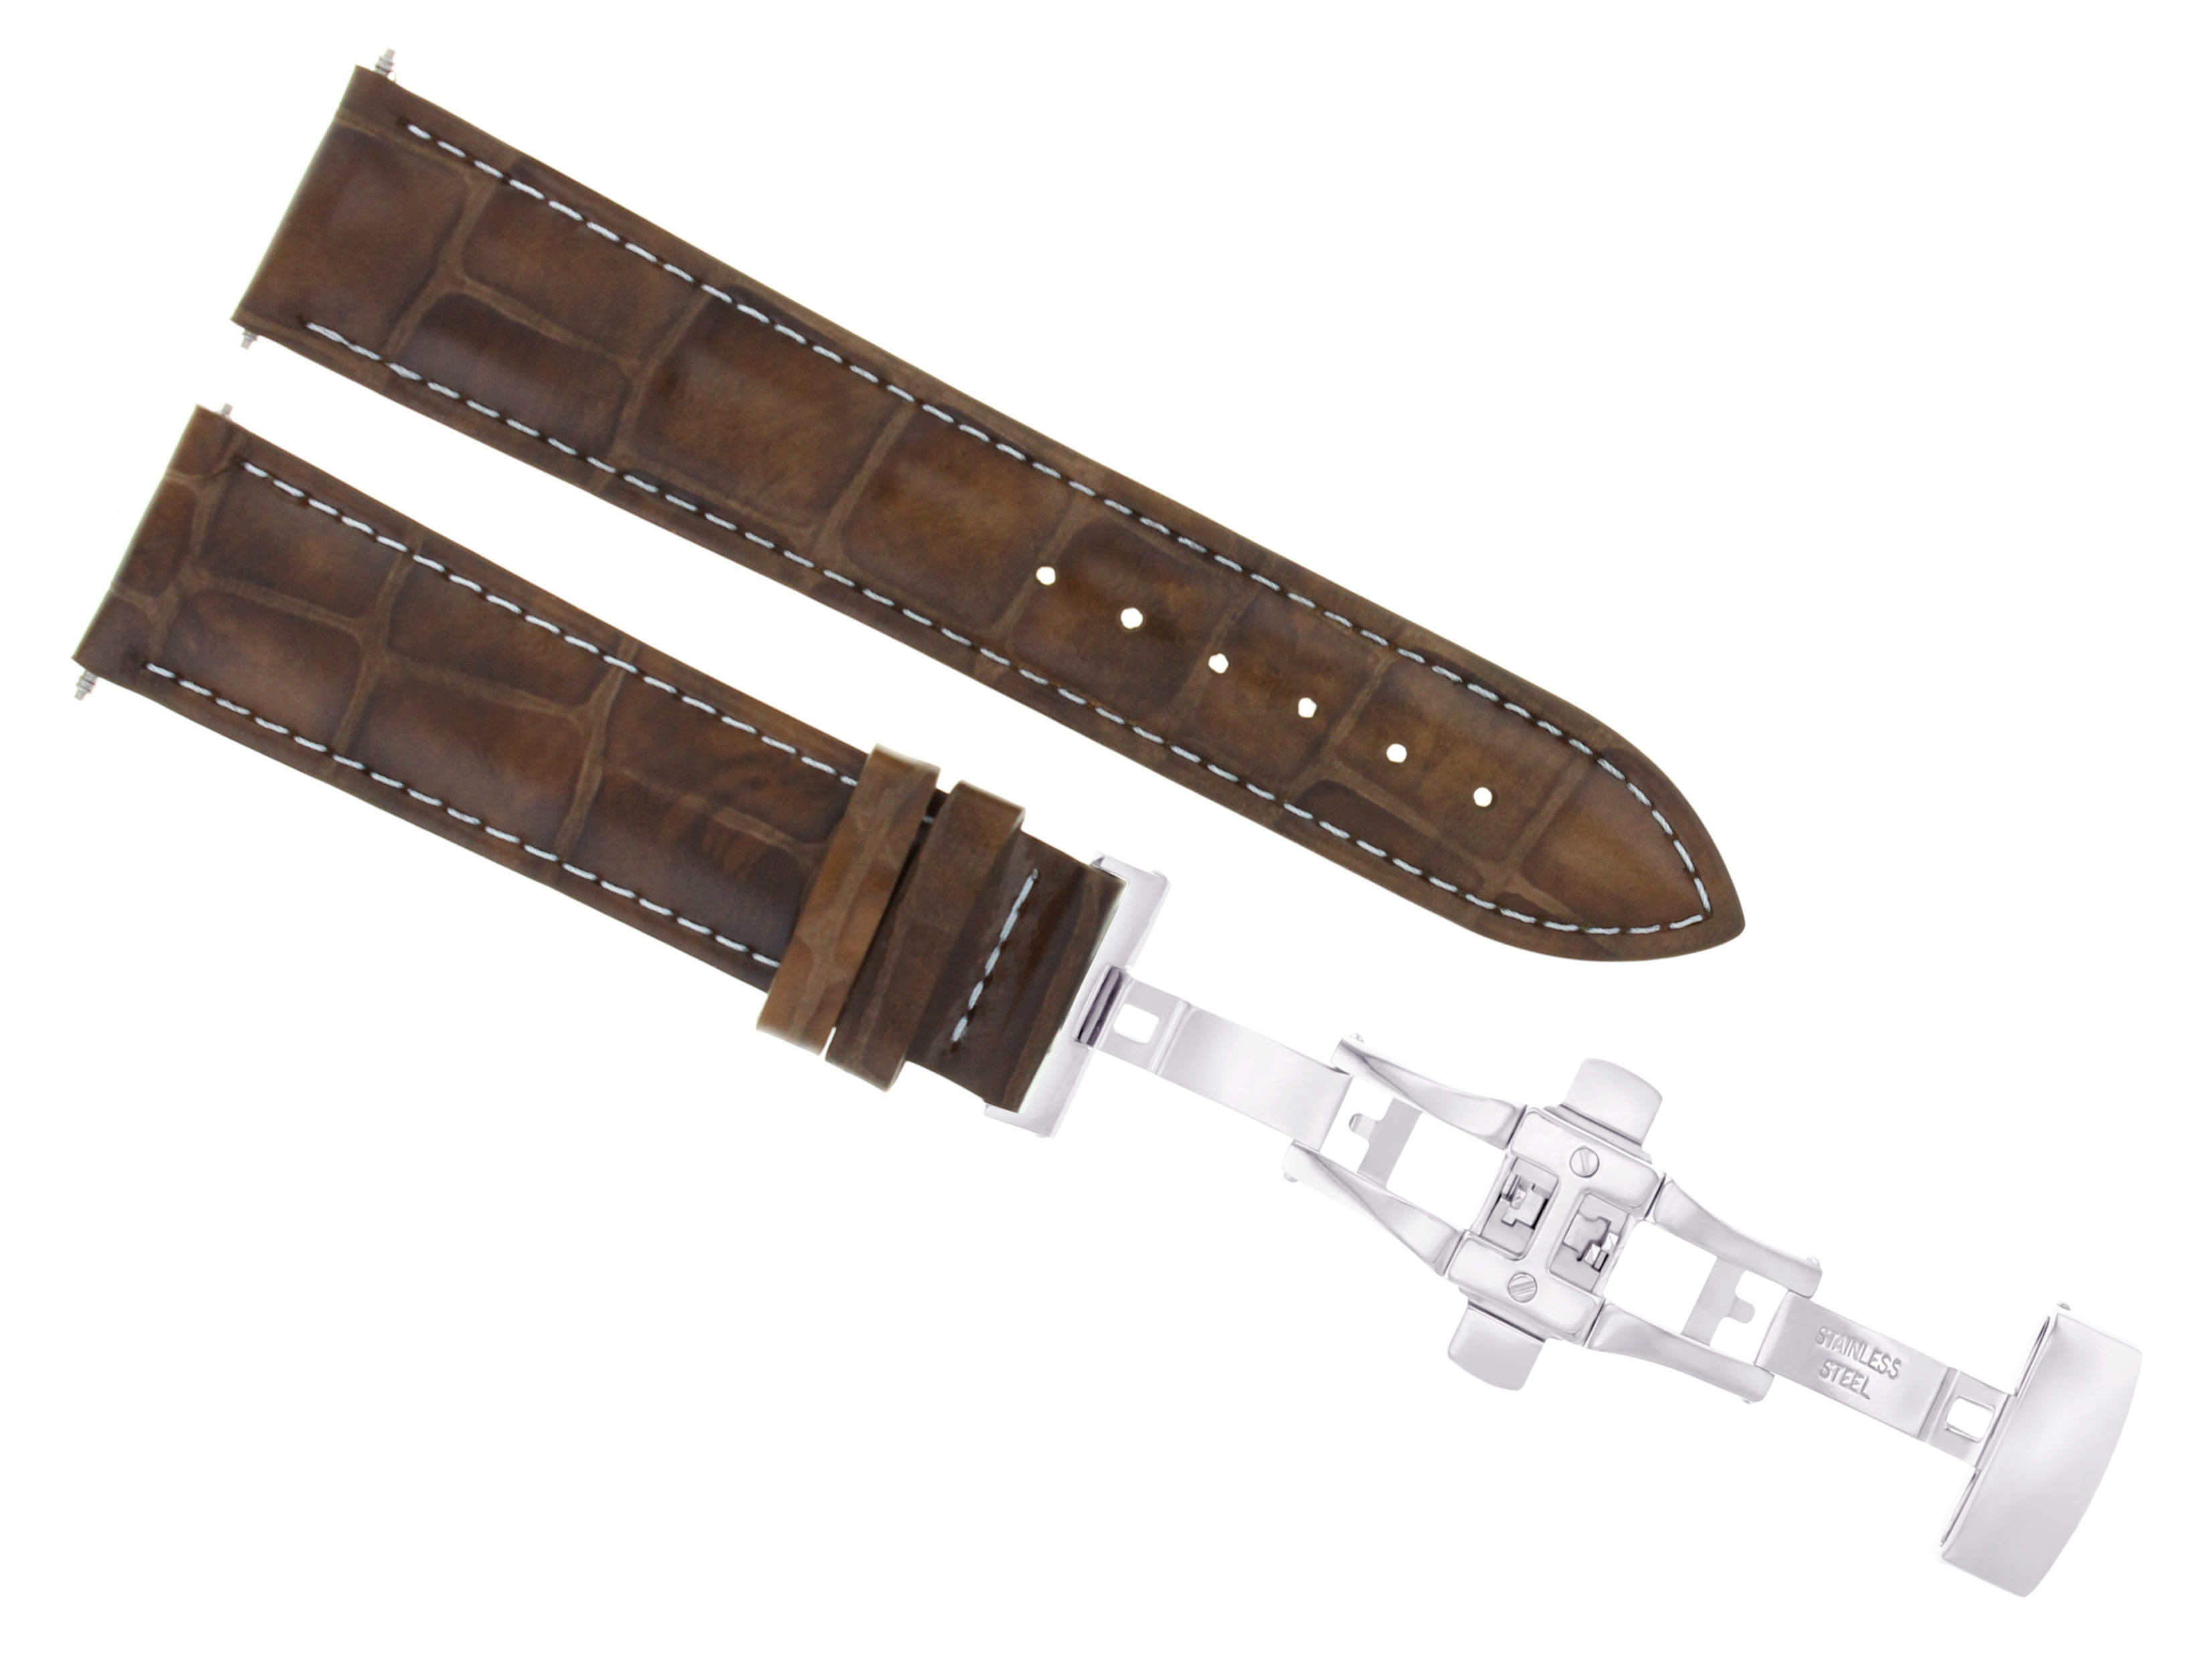 Brown Genuine Leather Strap/band Fit Breitling Watch Buckle/clasp 22mm 24mm Wristwatch Bands